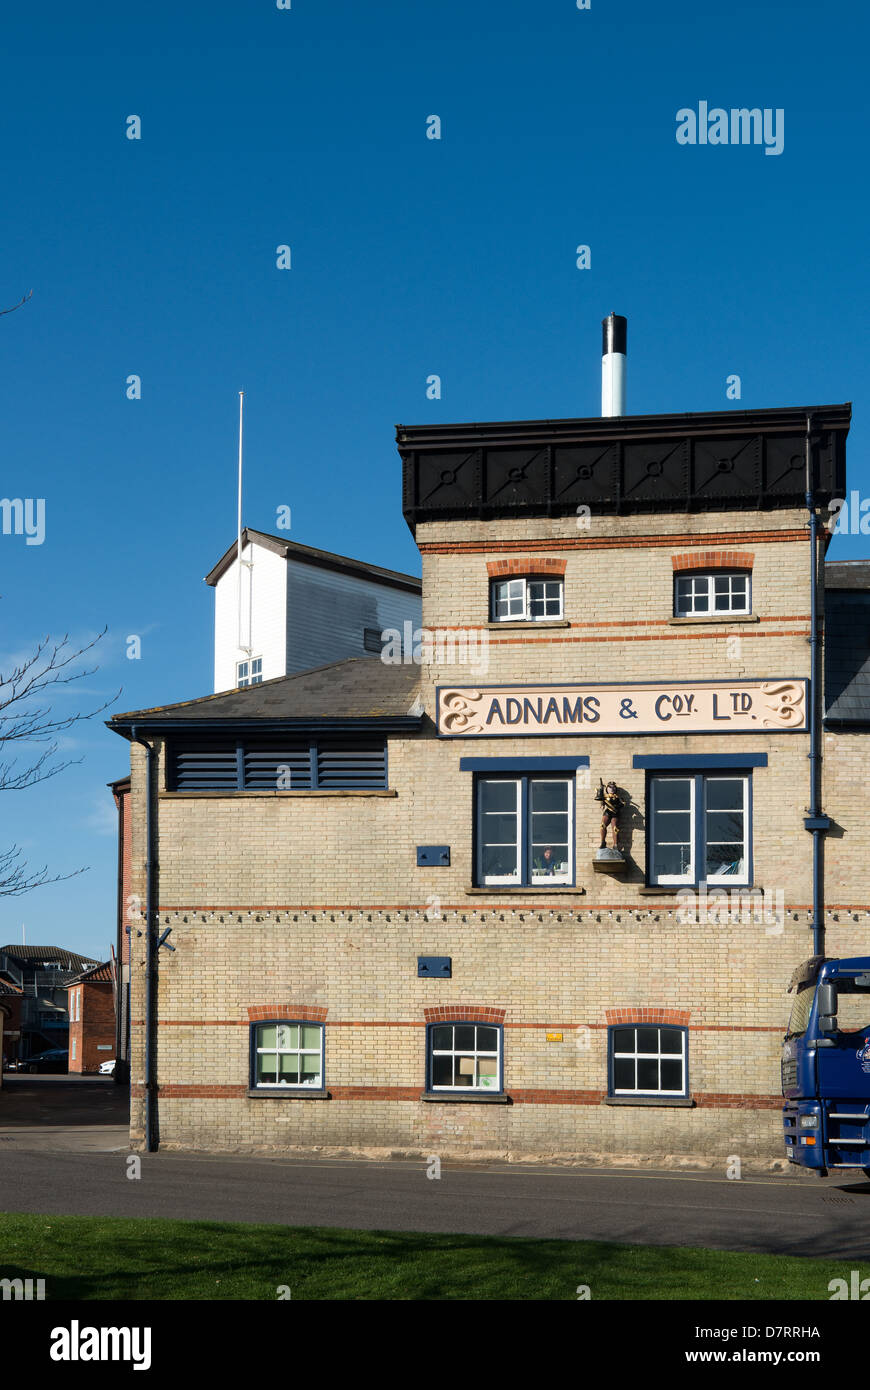 Adnams & Firma Brauerei, Southwold, Suffolk, UK -1 Stockbild